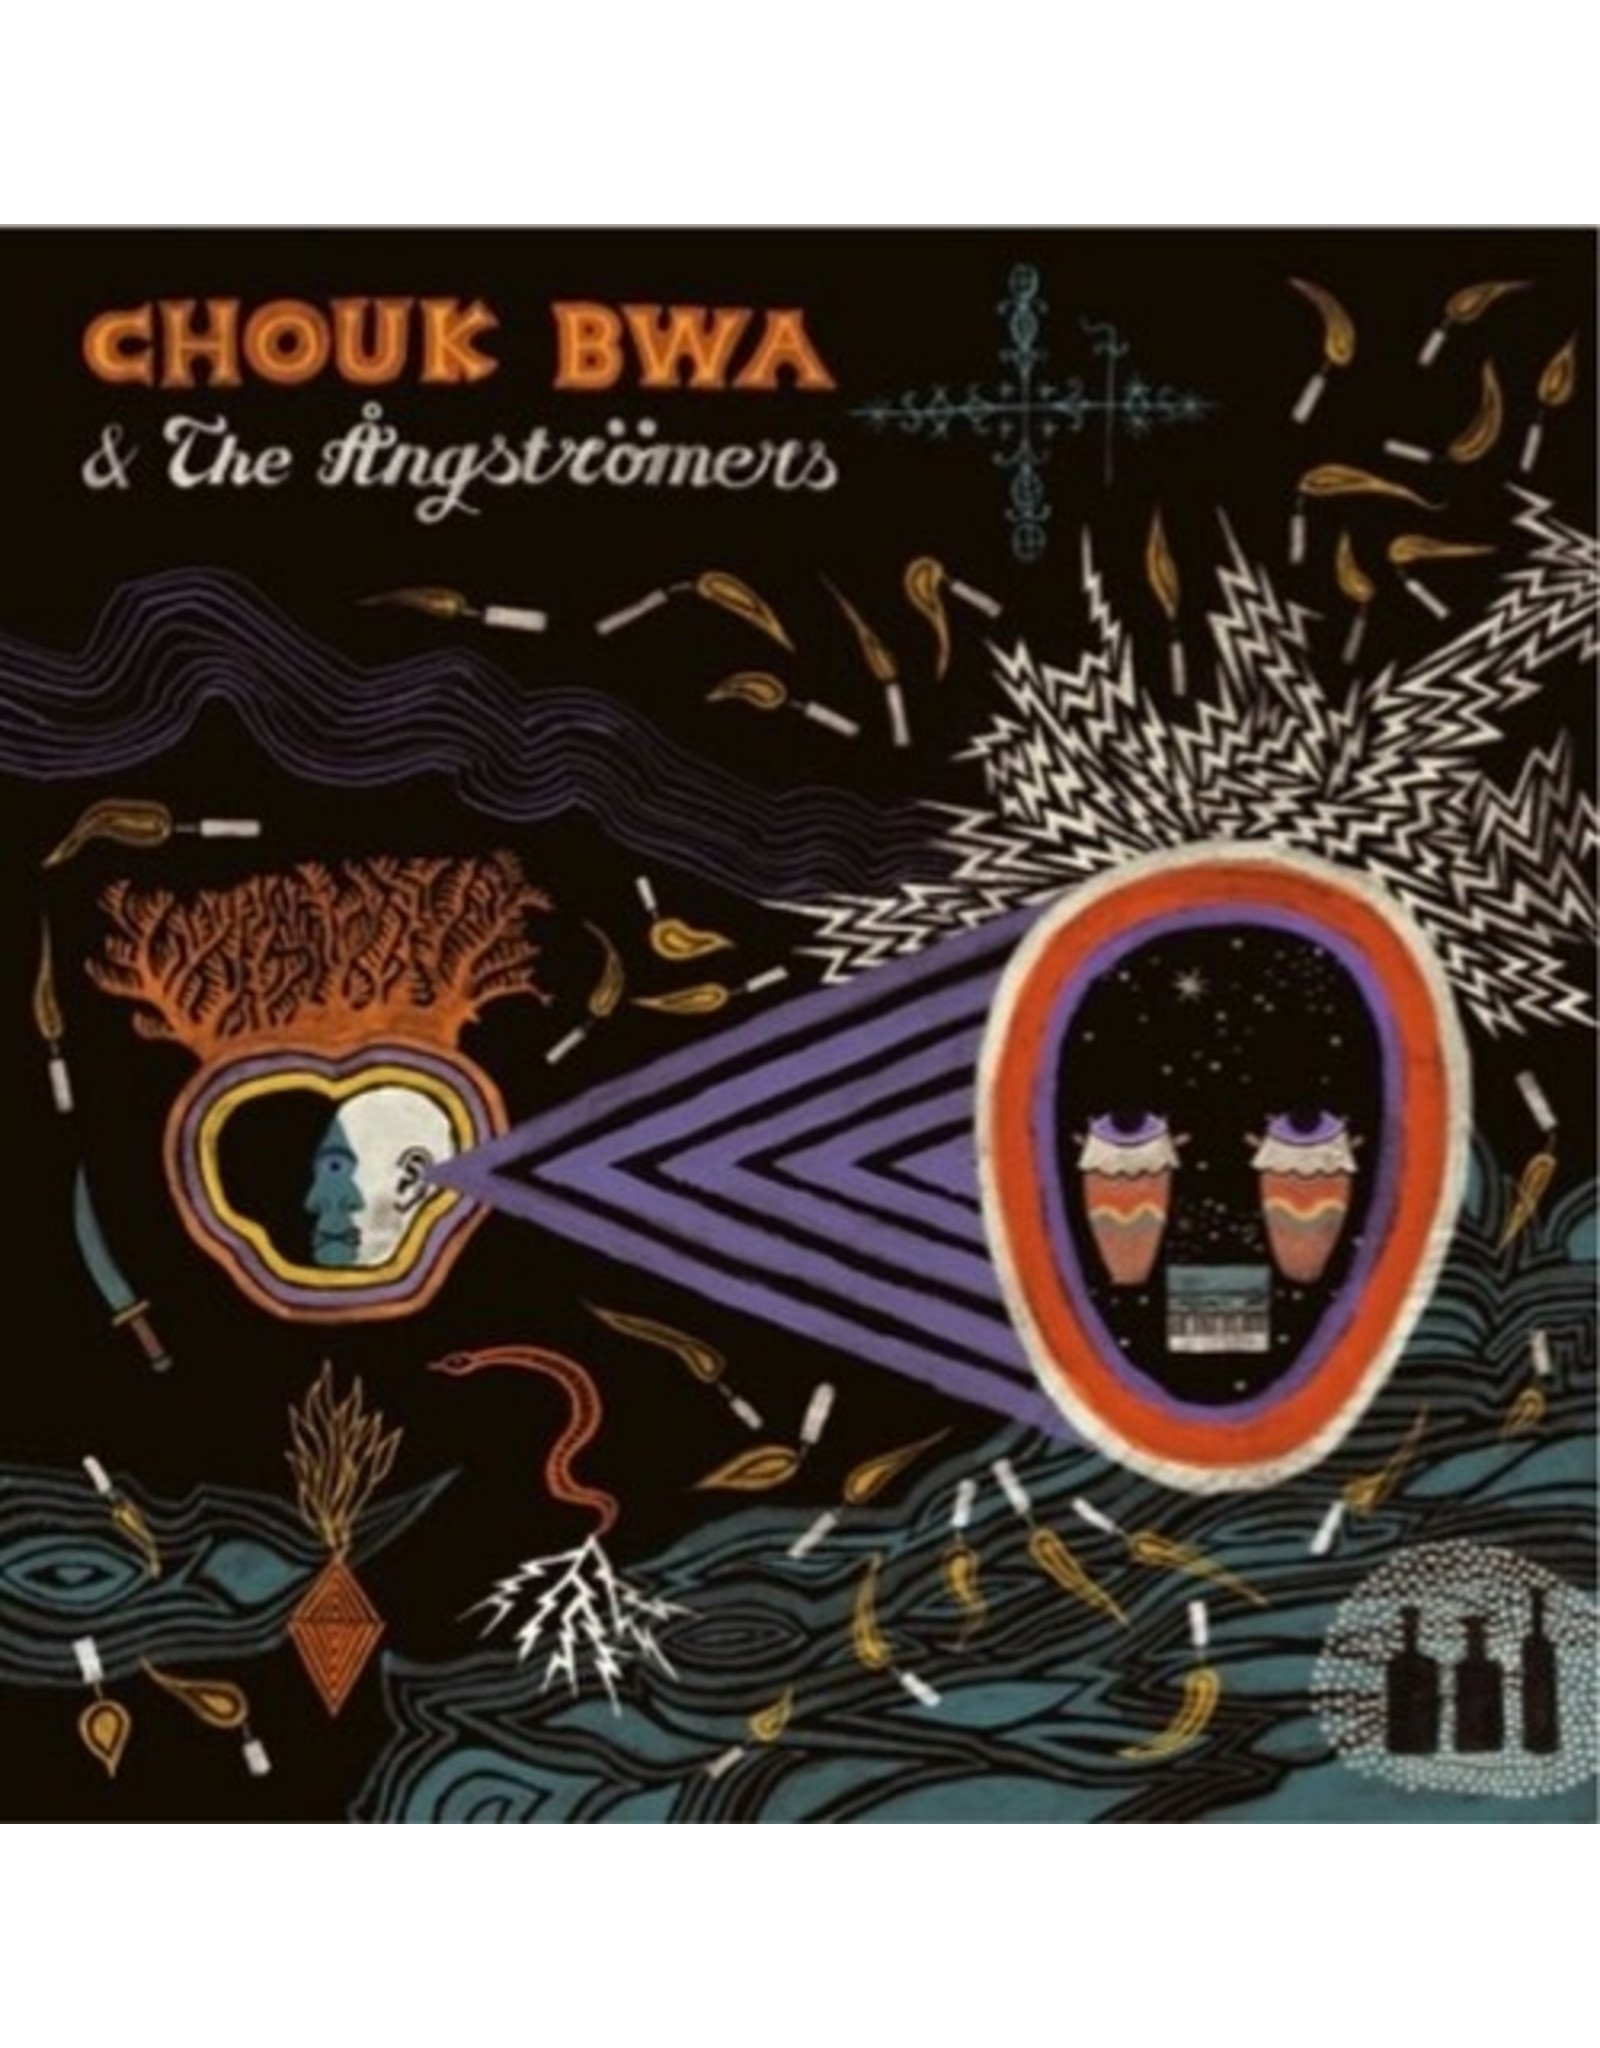 New Vinyl Chouk Bwa & The Angstromers - Vodou Ale LP